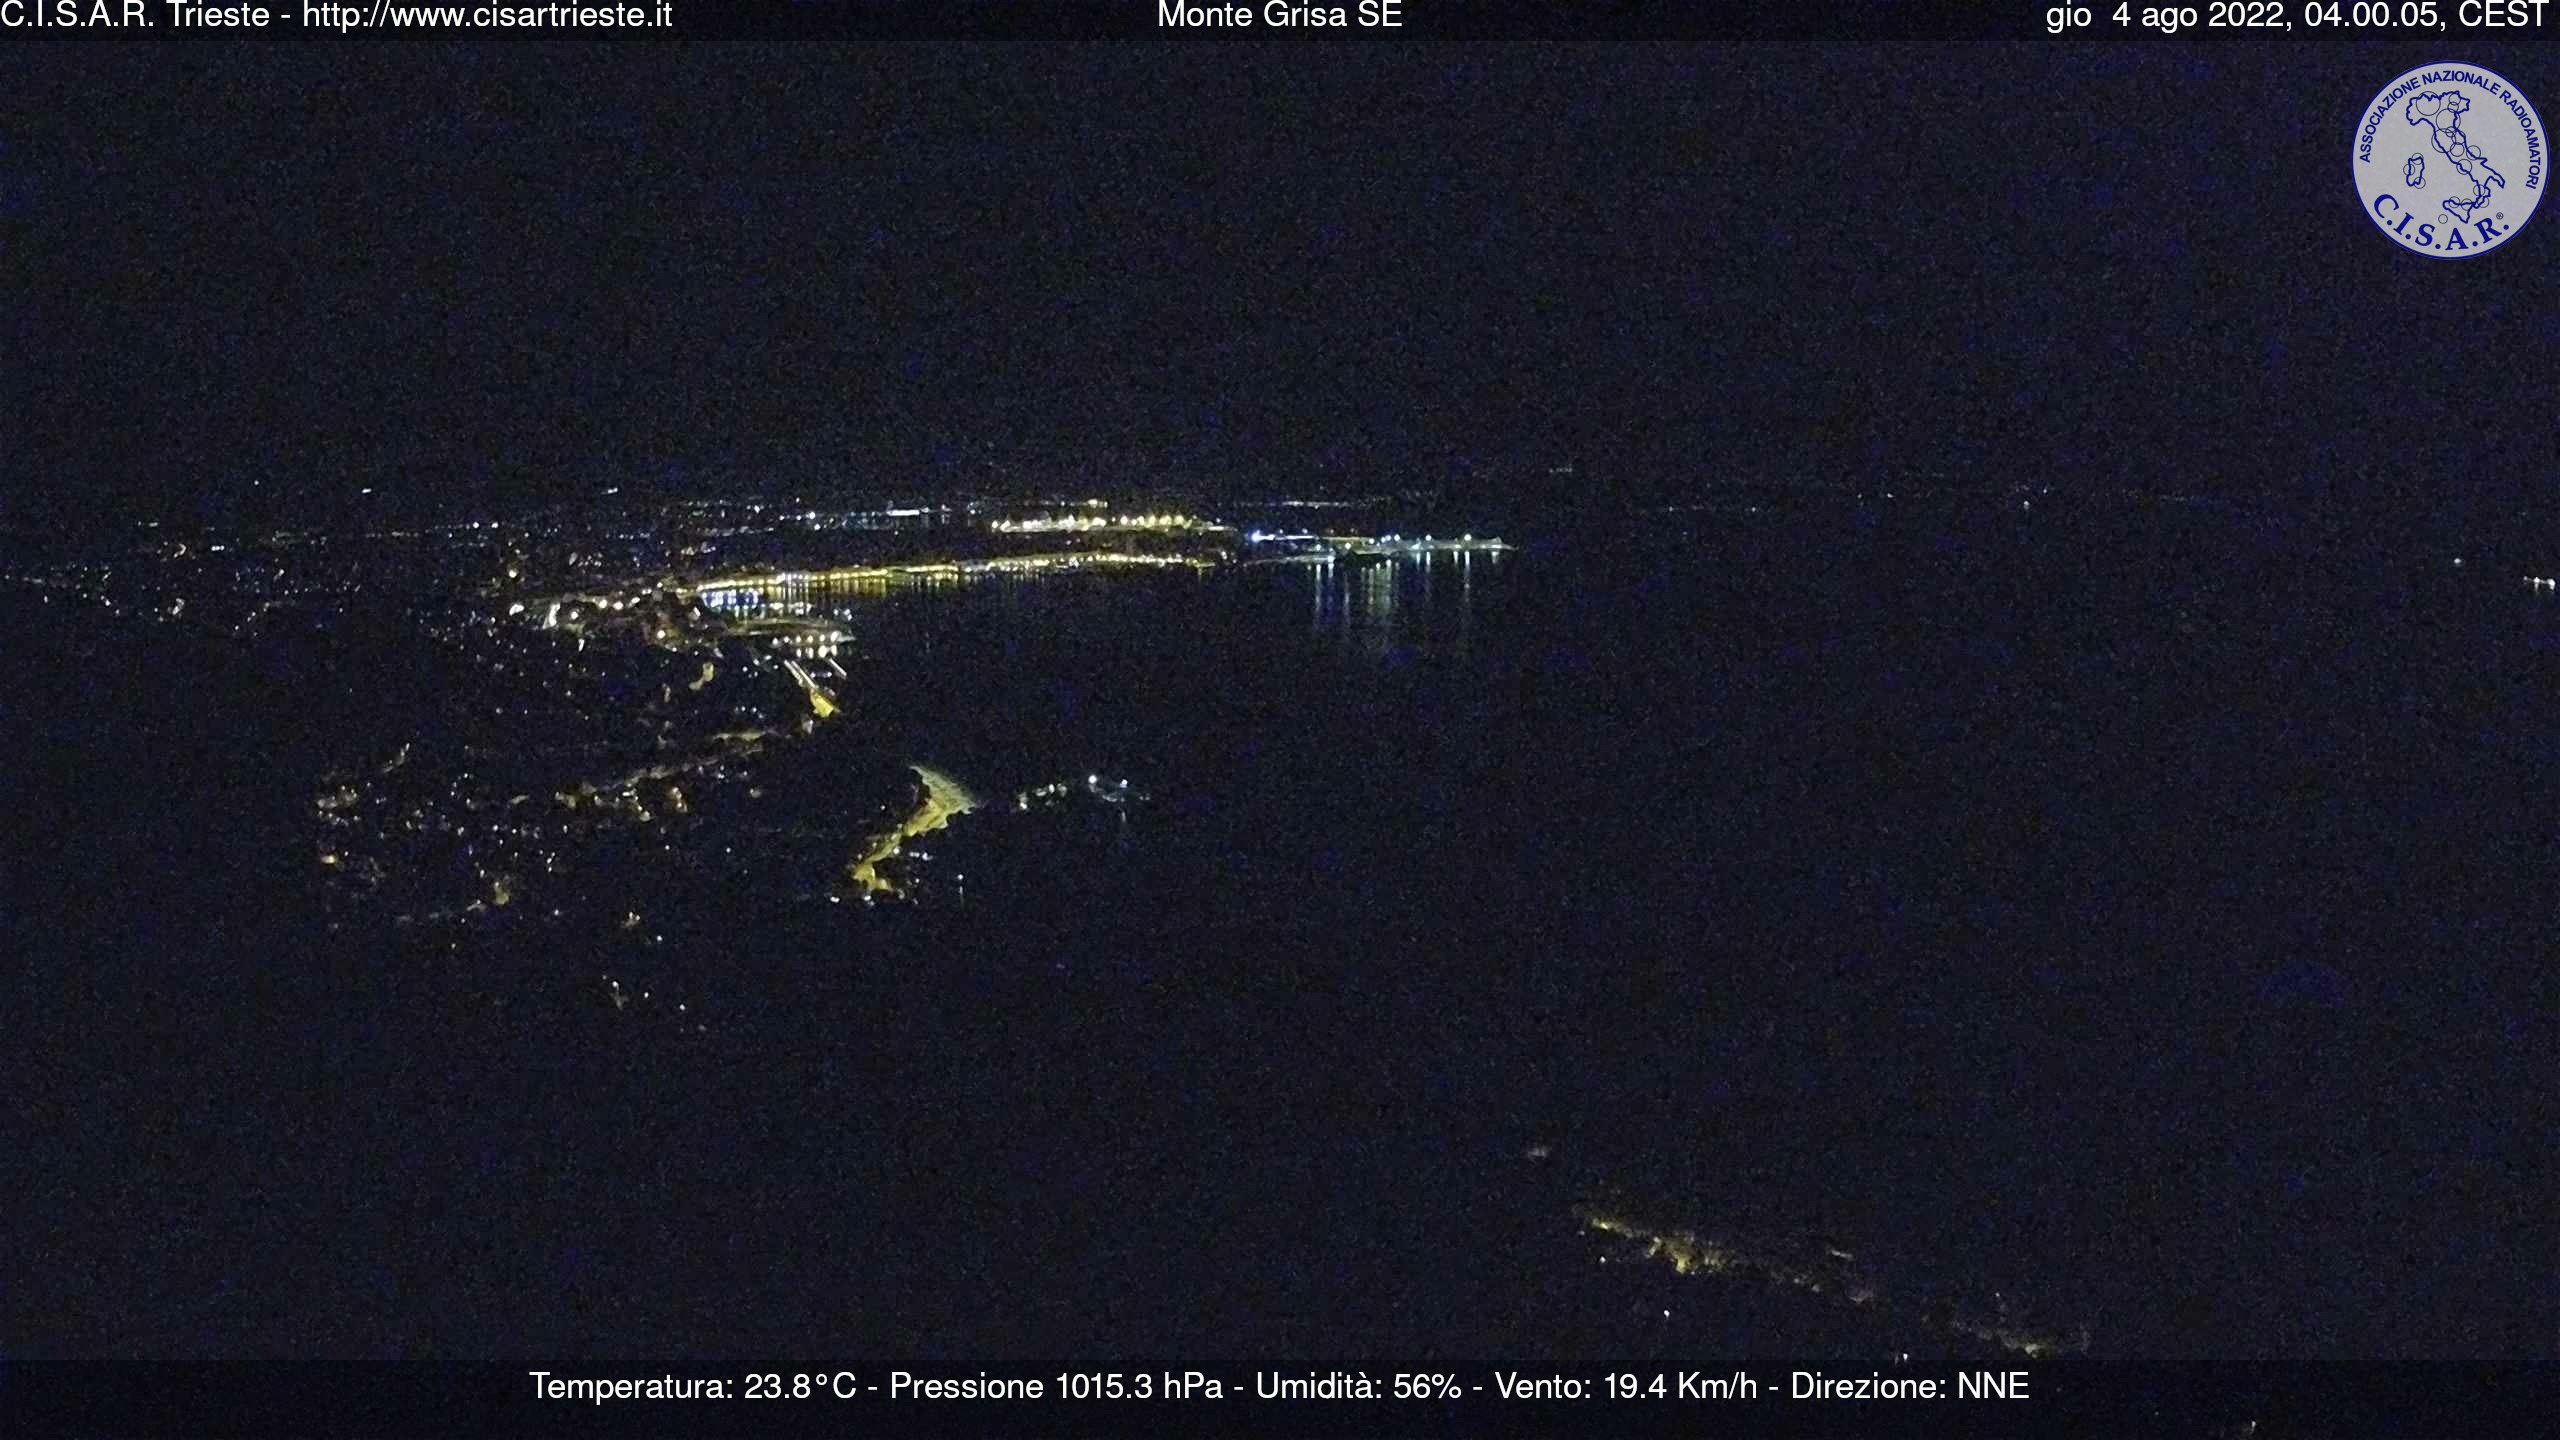 Webcam Trieste Grisa